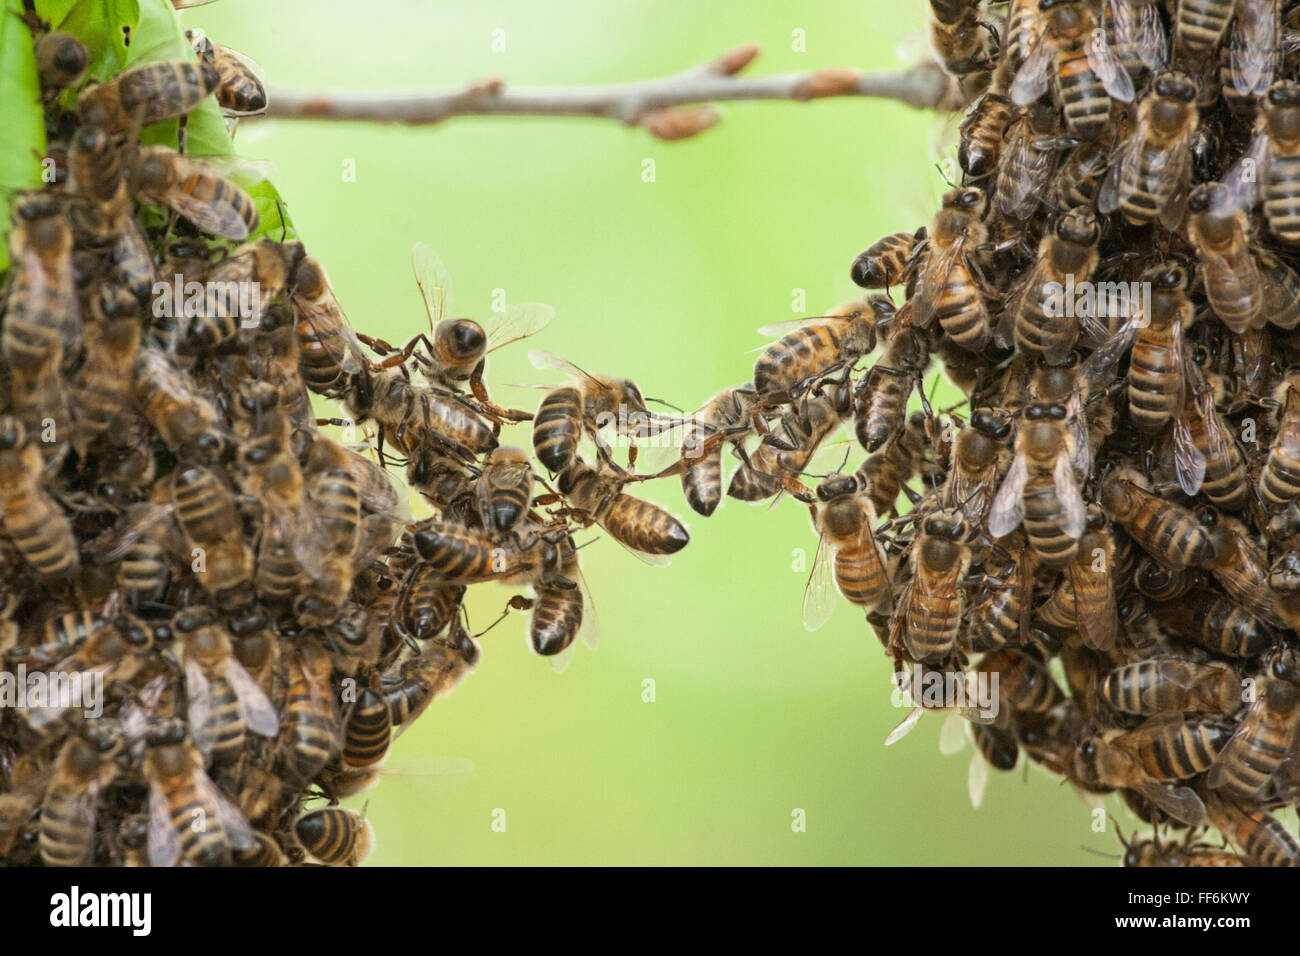 Teamwork of bees linking two bee swarm parts. Metaphor for concept of trust, teamwork, cooperate, partnership, bridge, - Stock Image